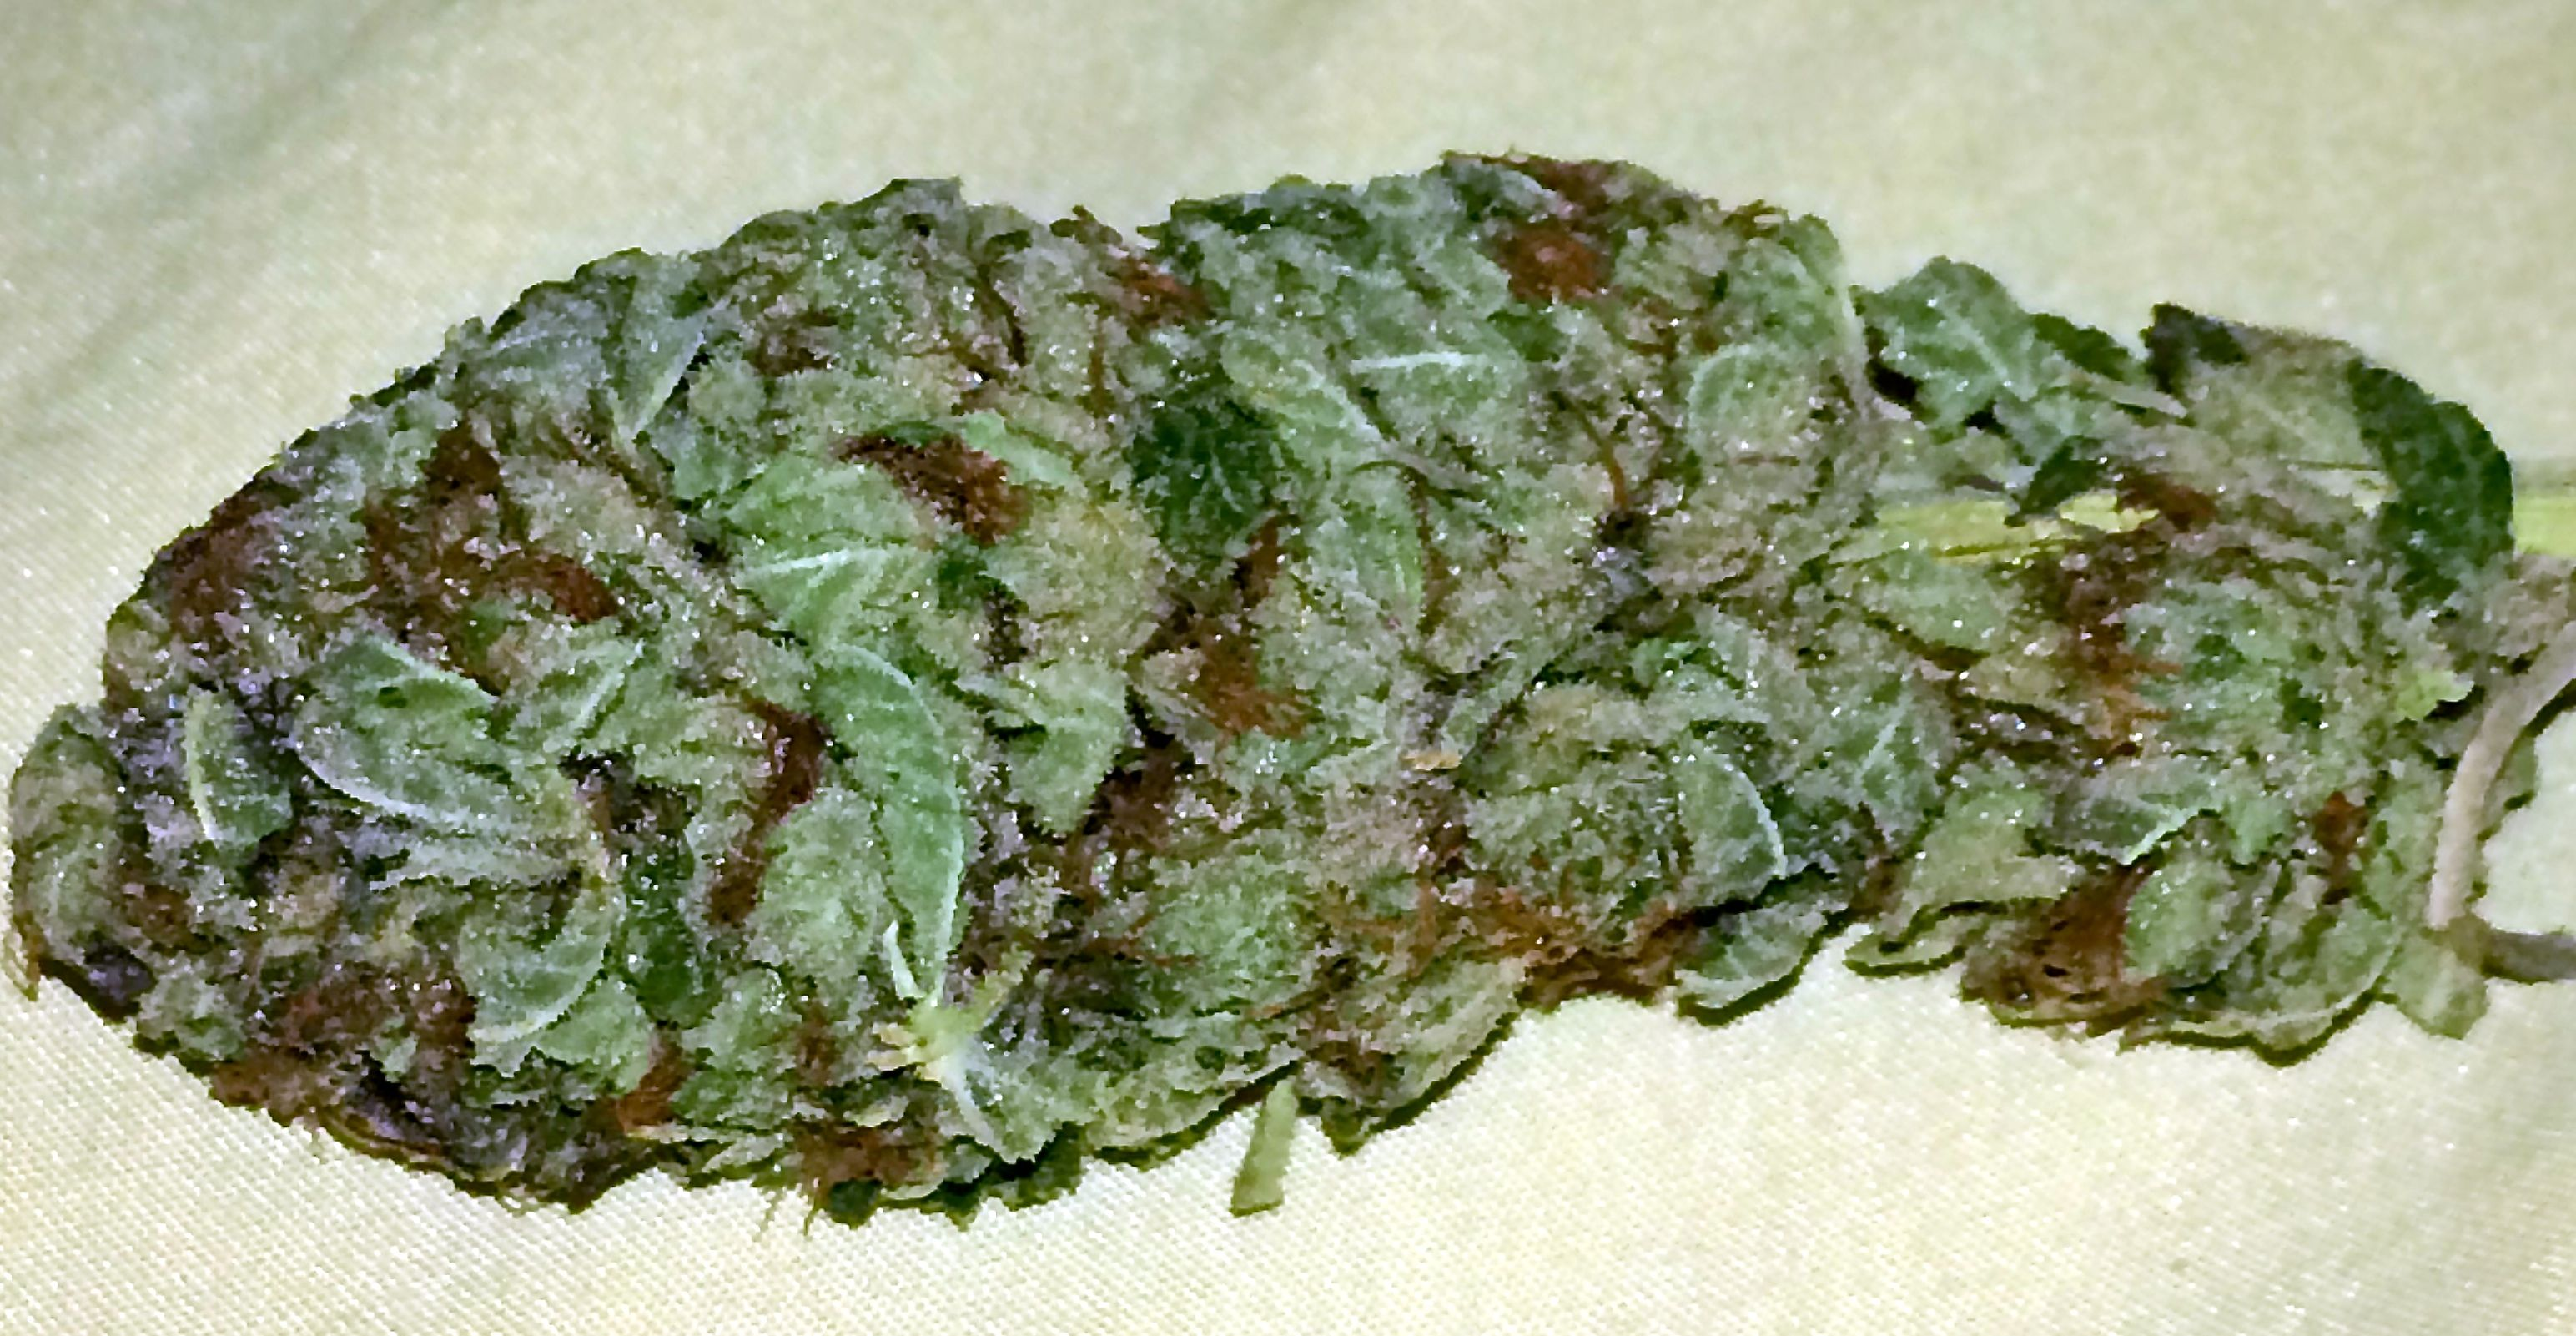 Cadillac Purple is a heavy indica strain that is popular among users  seeking true body relaxation